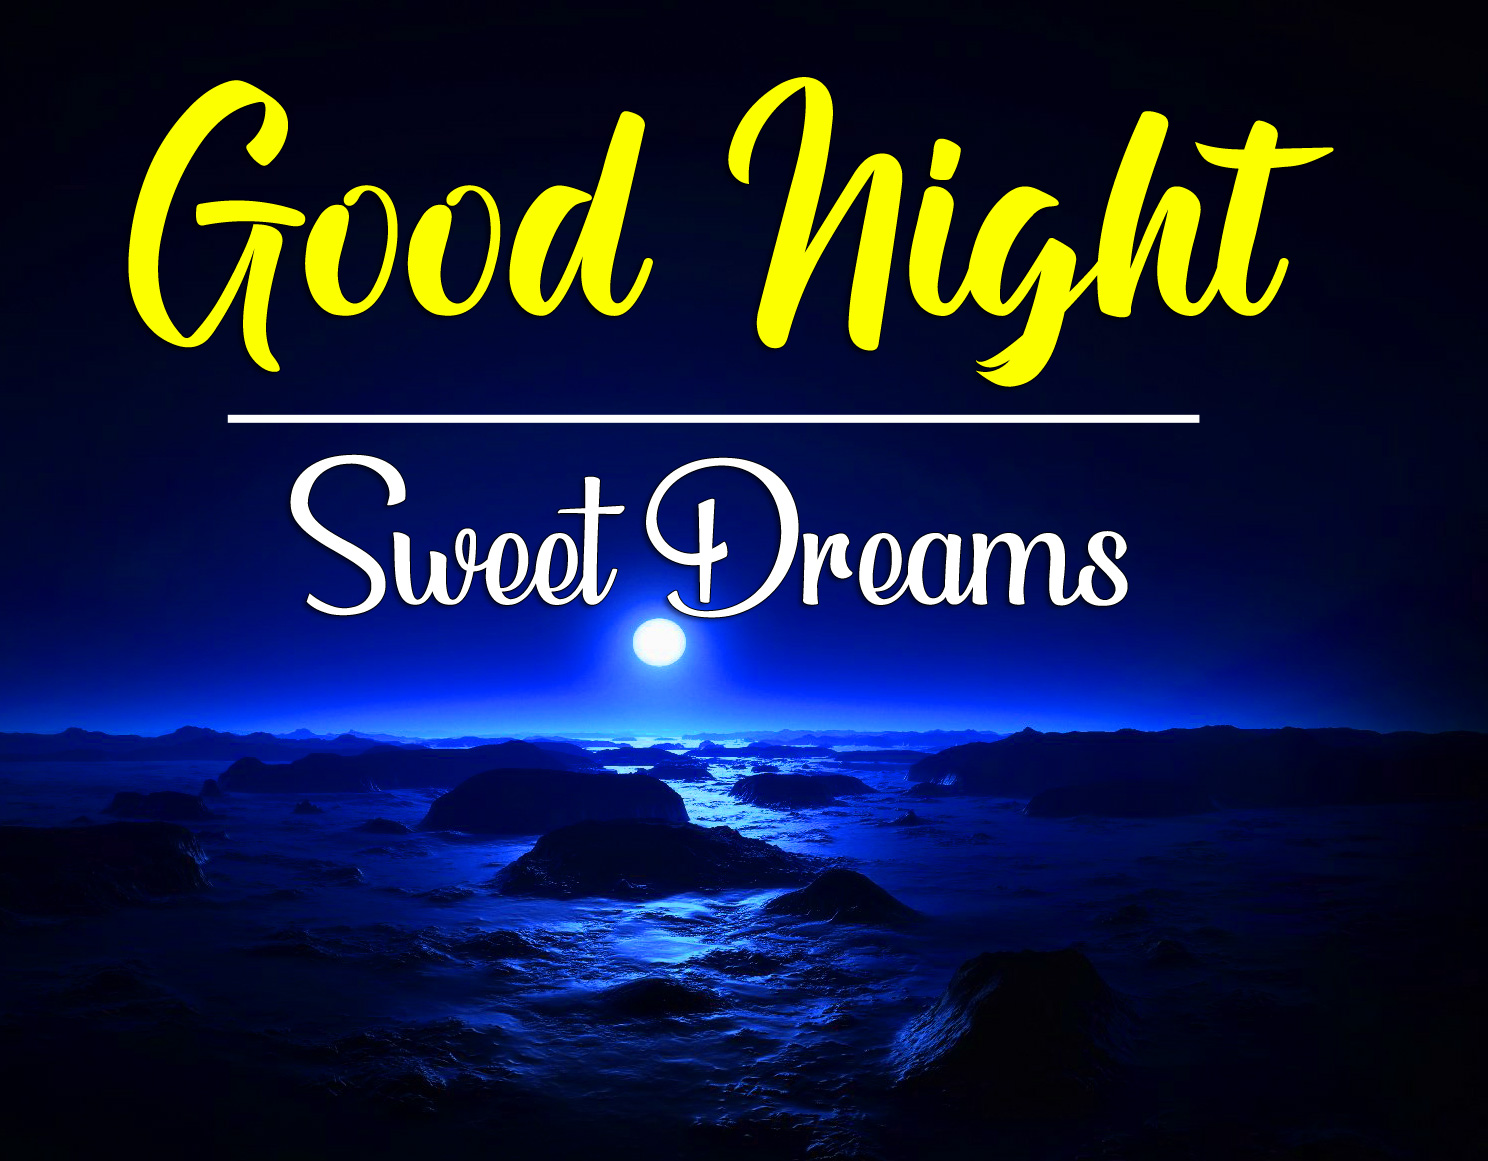 Best New 4k Good Night Images Pics Download